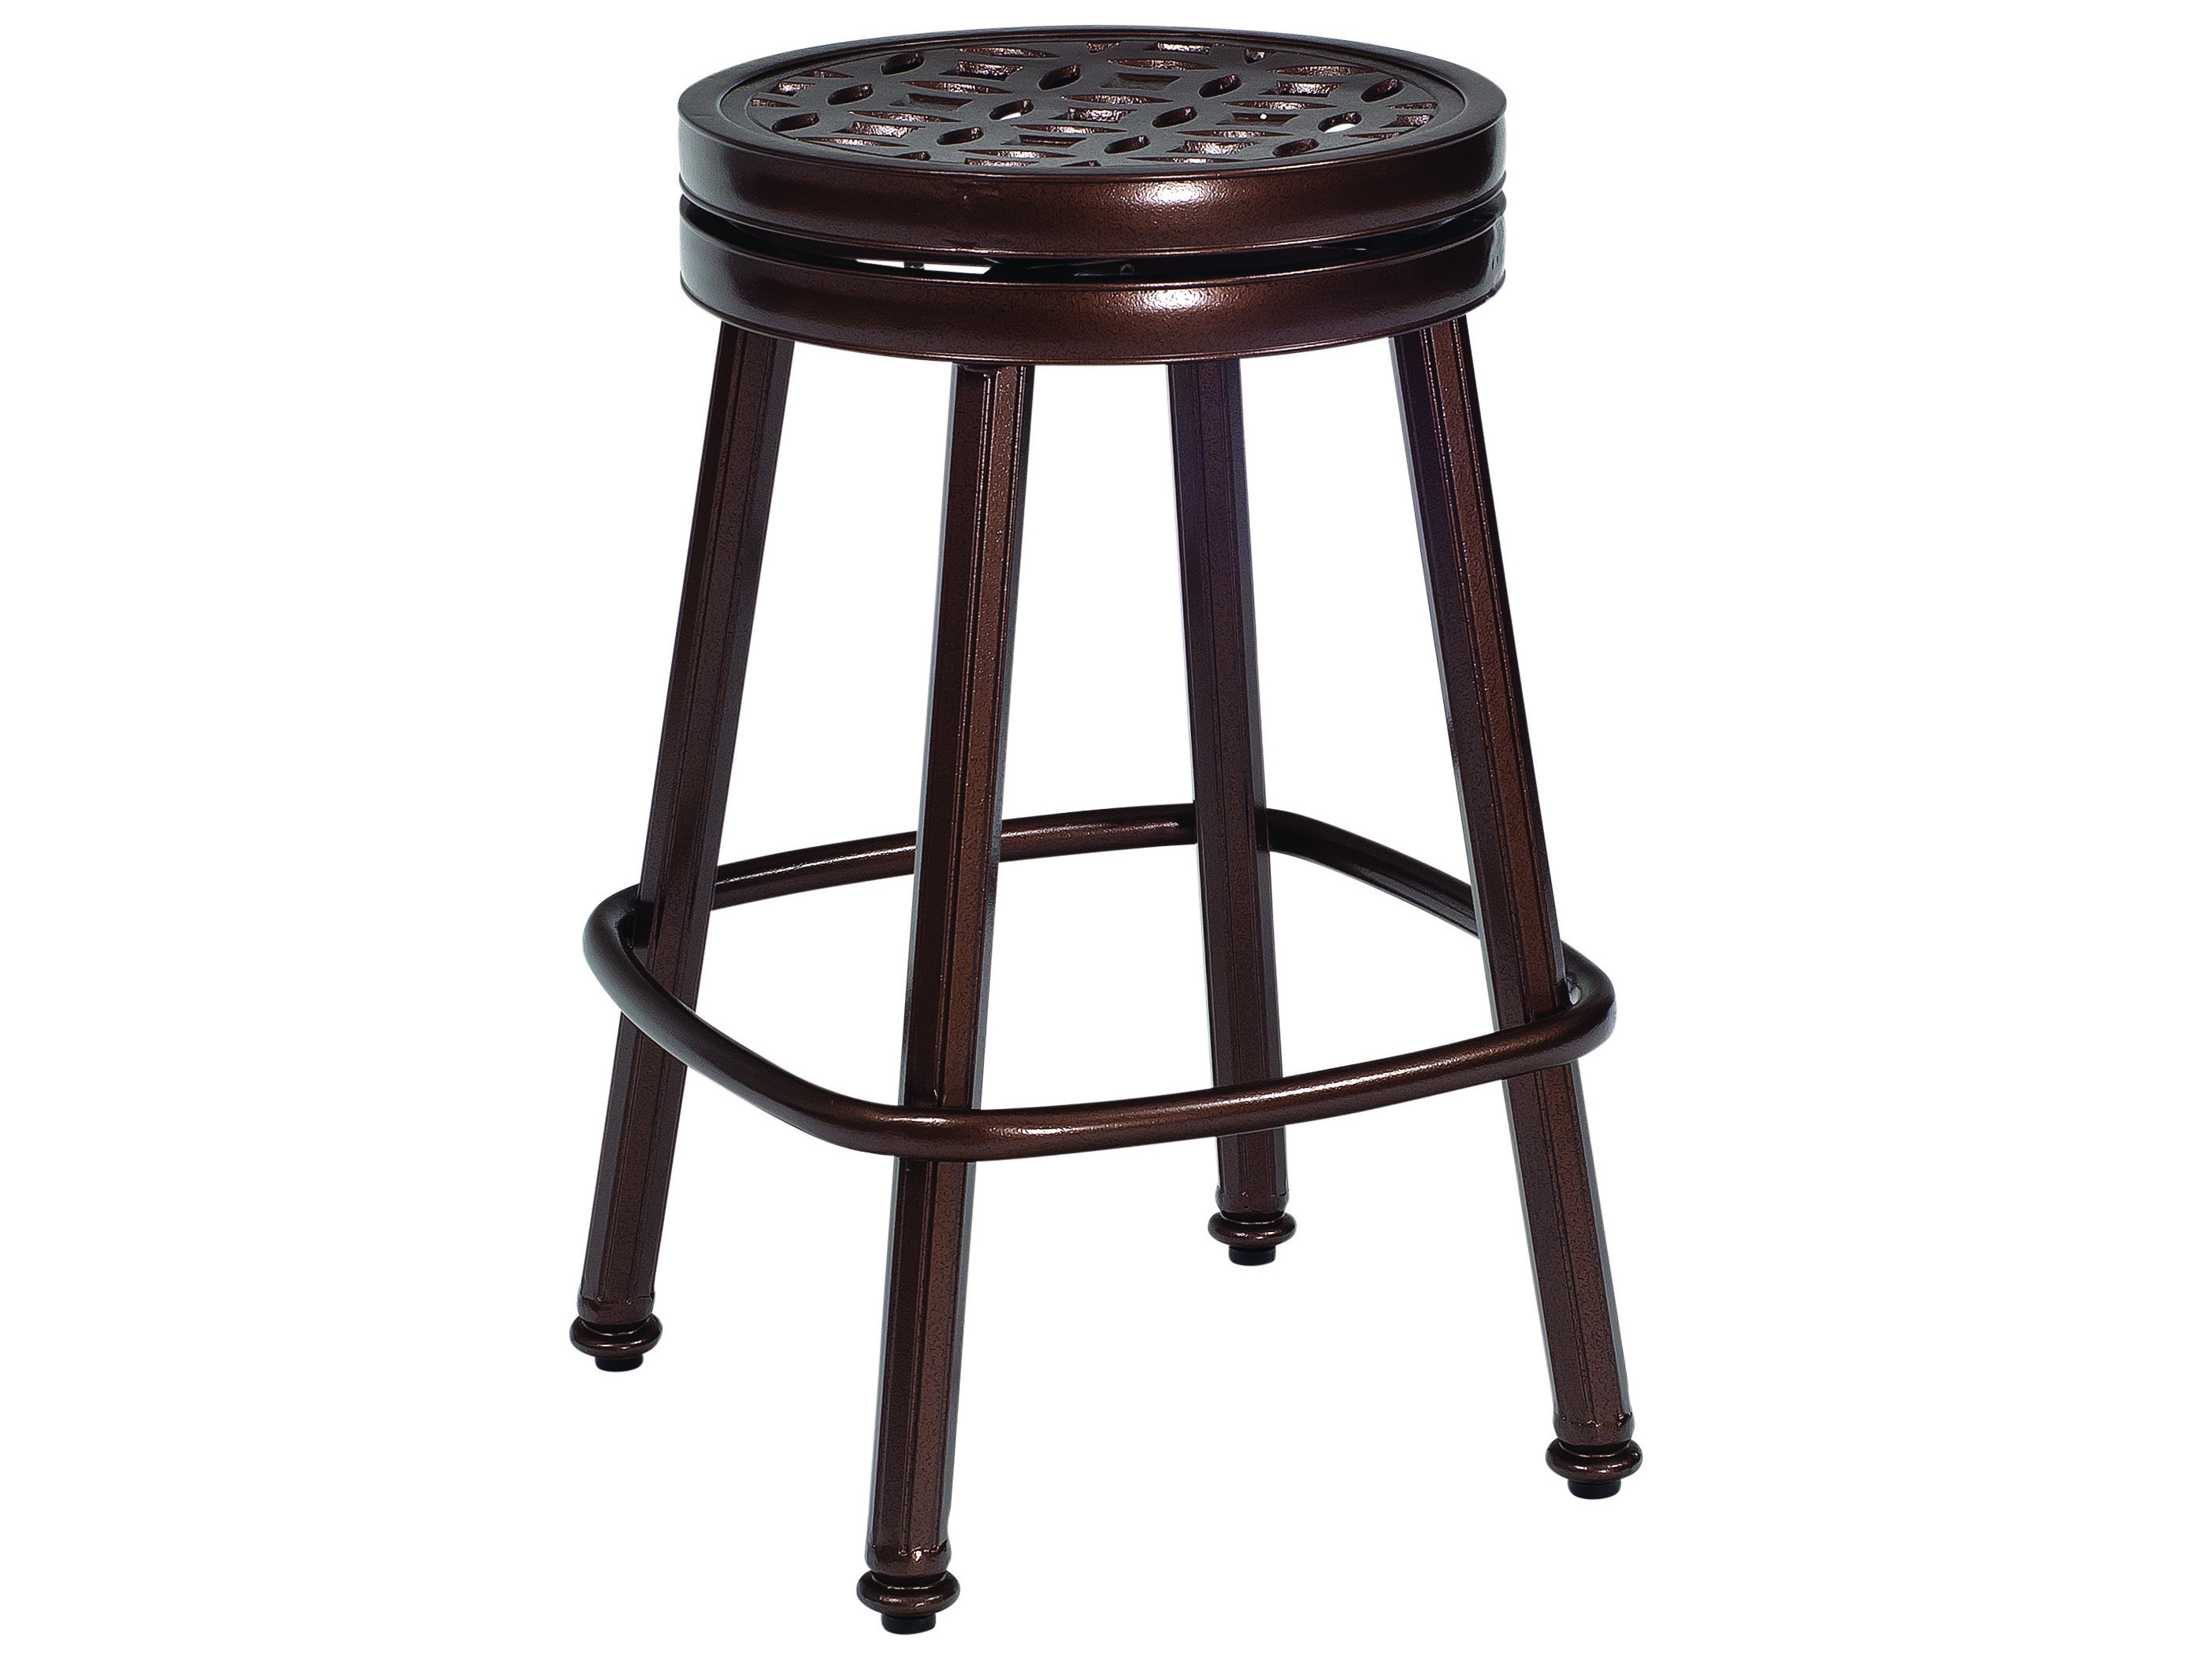 Admirable Woodard Cast Casa Cast Aluminum Round Swivel Counter Stool Bralicious Painted Fabric Chair Ideas Braliciousco